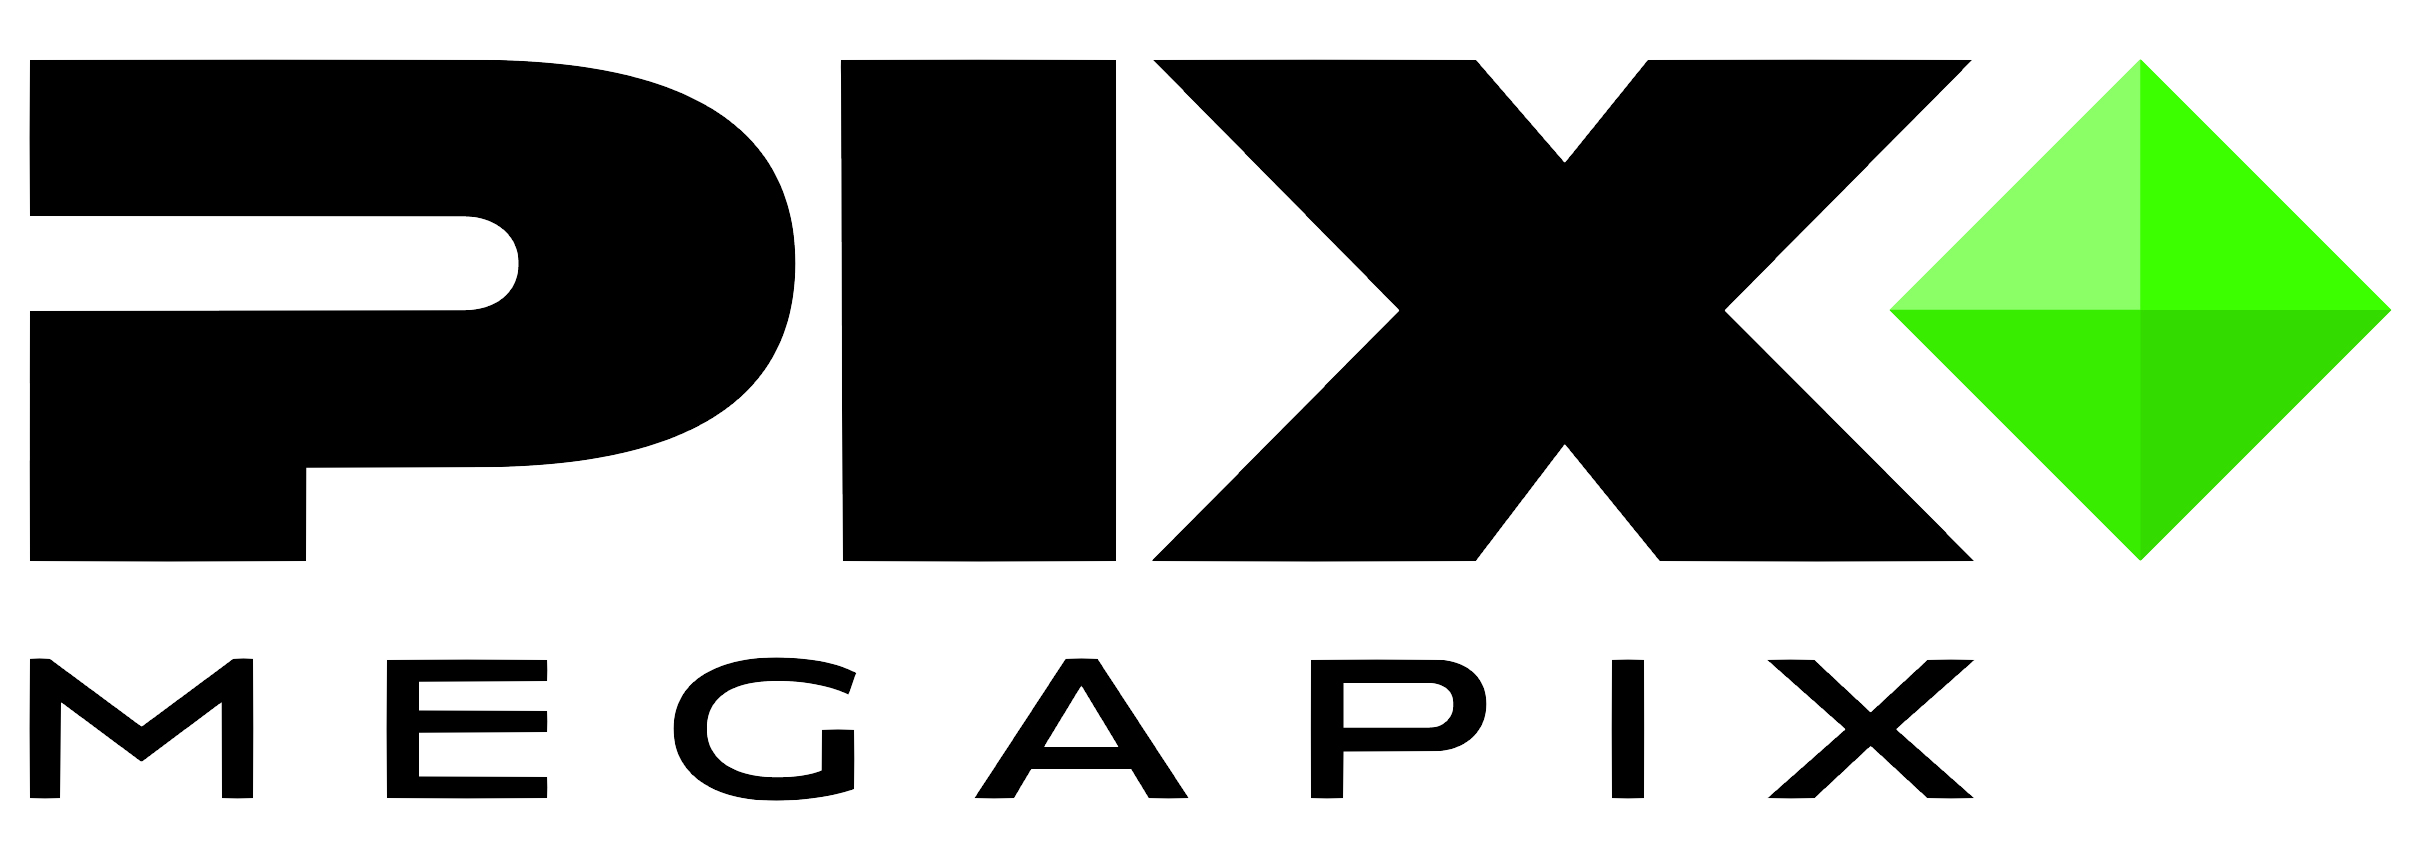 Megapix Logo Wallpaper